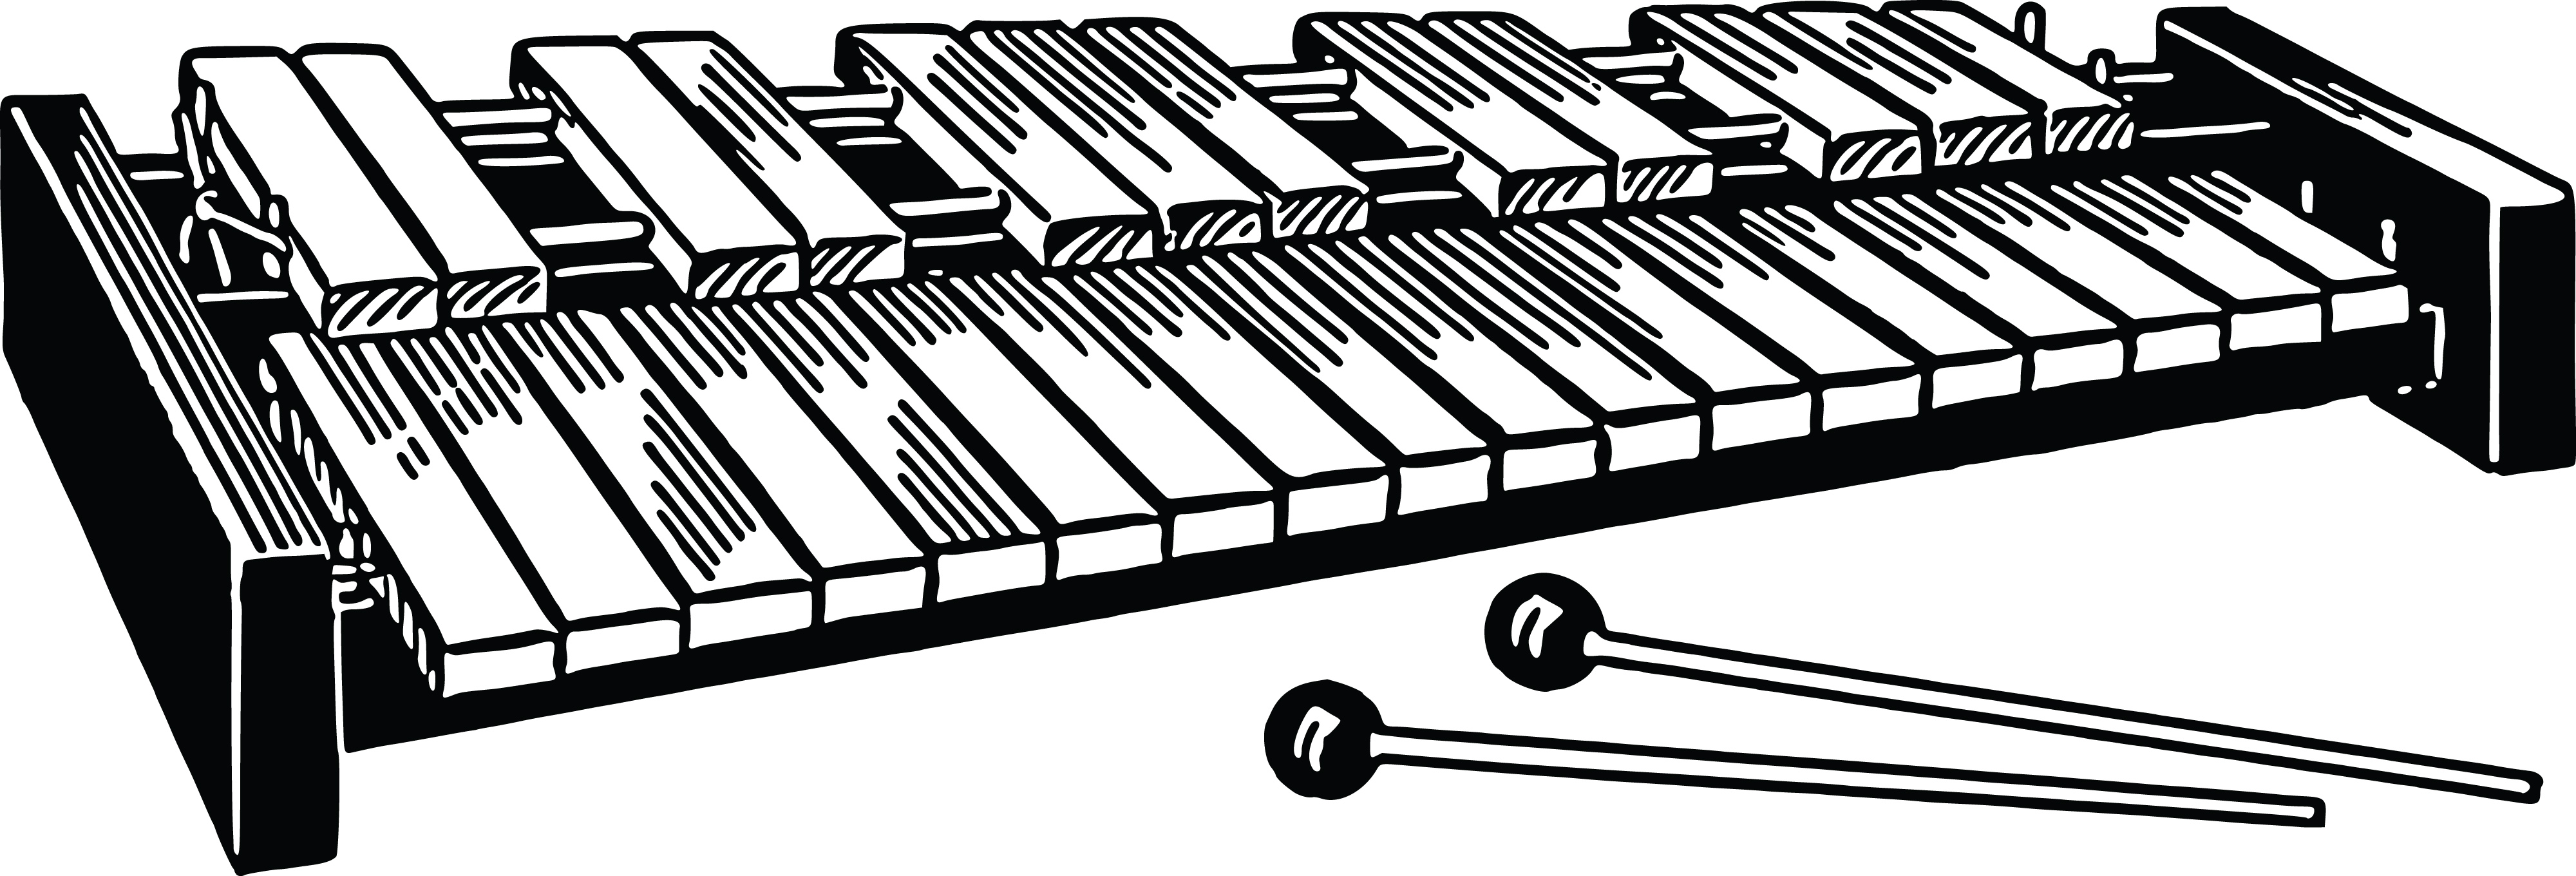 Xylophone Clipart-Clipartlook.com-4000